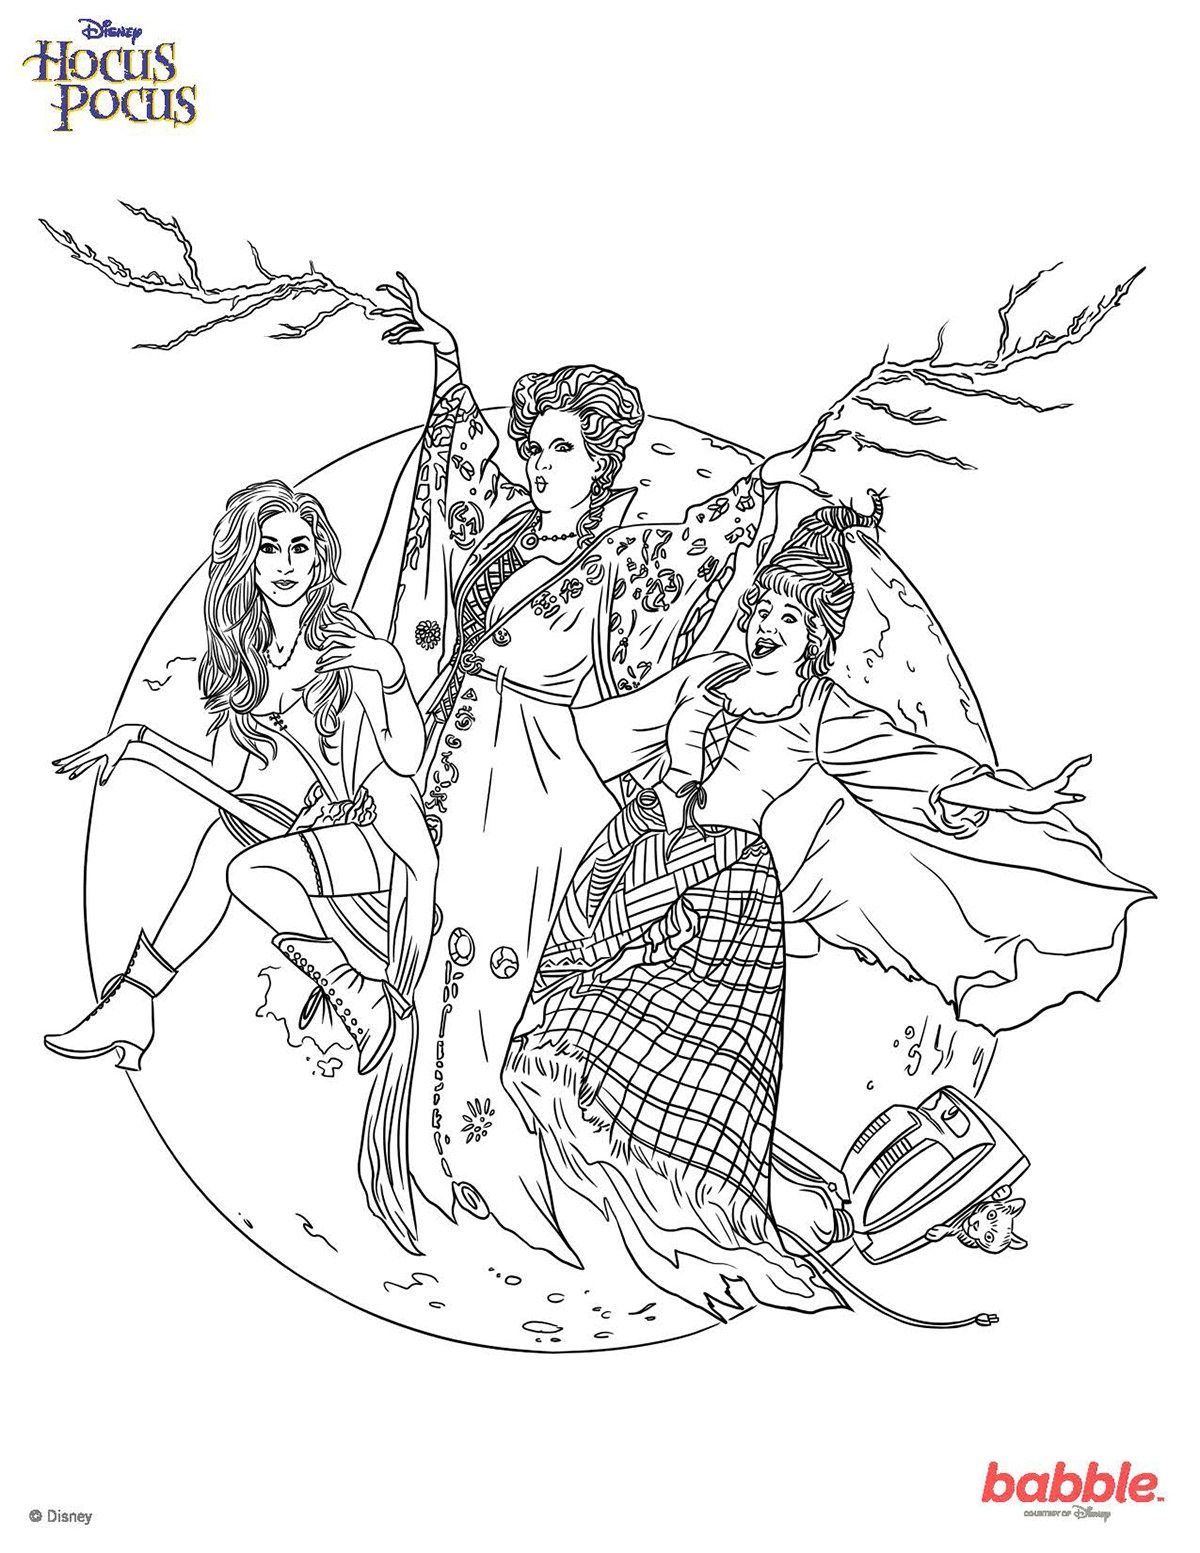 Hocus Pocus Coloring Pages Download | Witch coloring pages ...